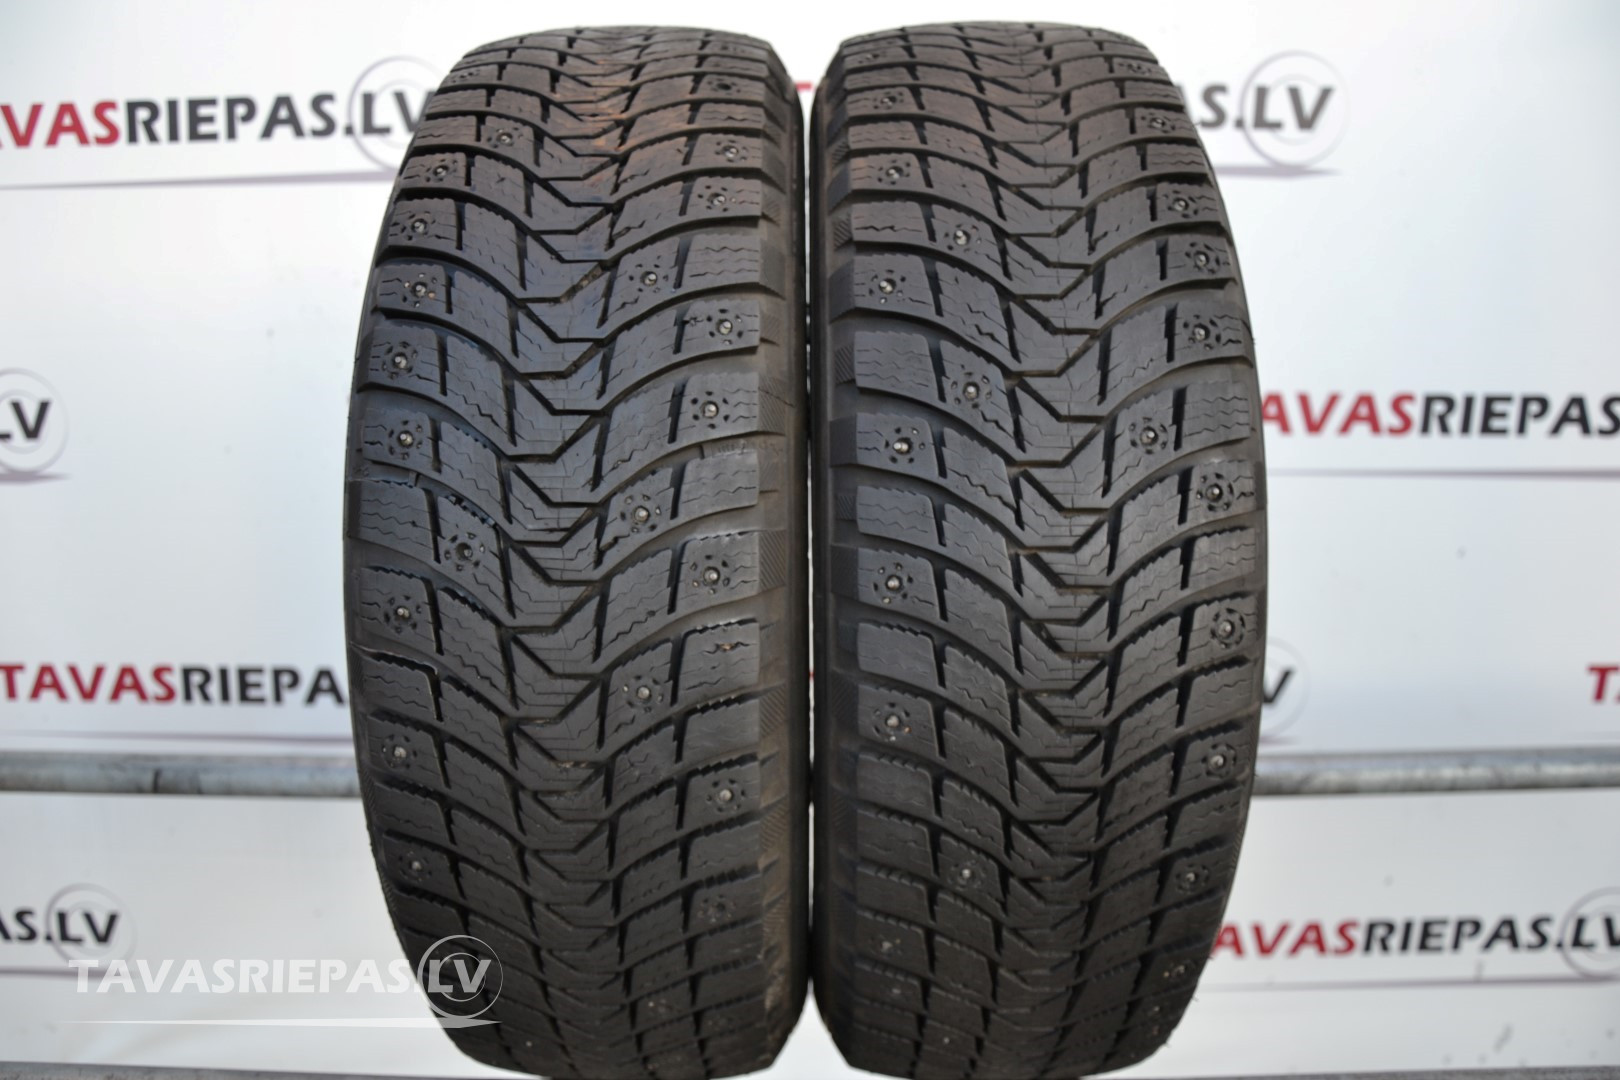 Michelin X-ICE North 3 winter tires: owner reviews, descriptions, specifications 99